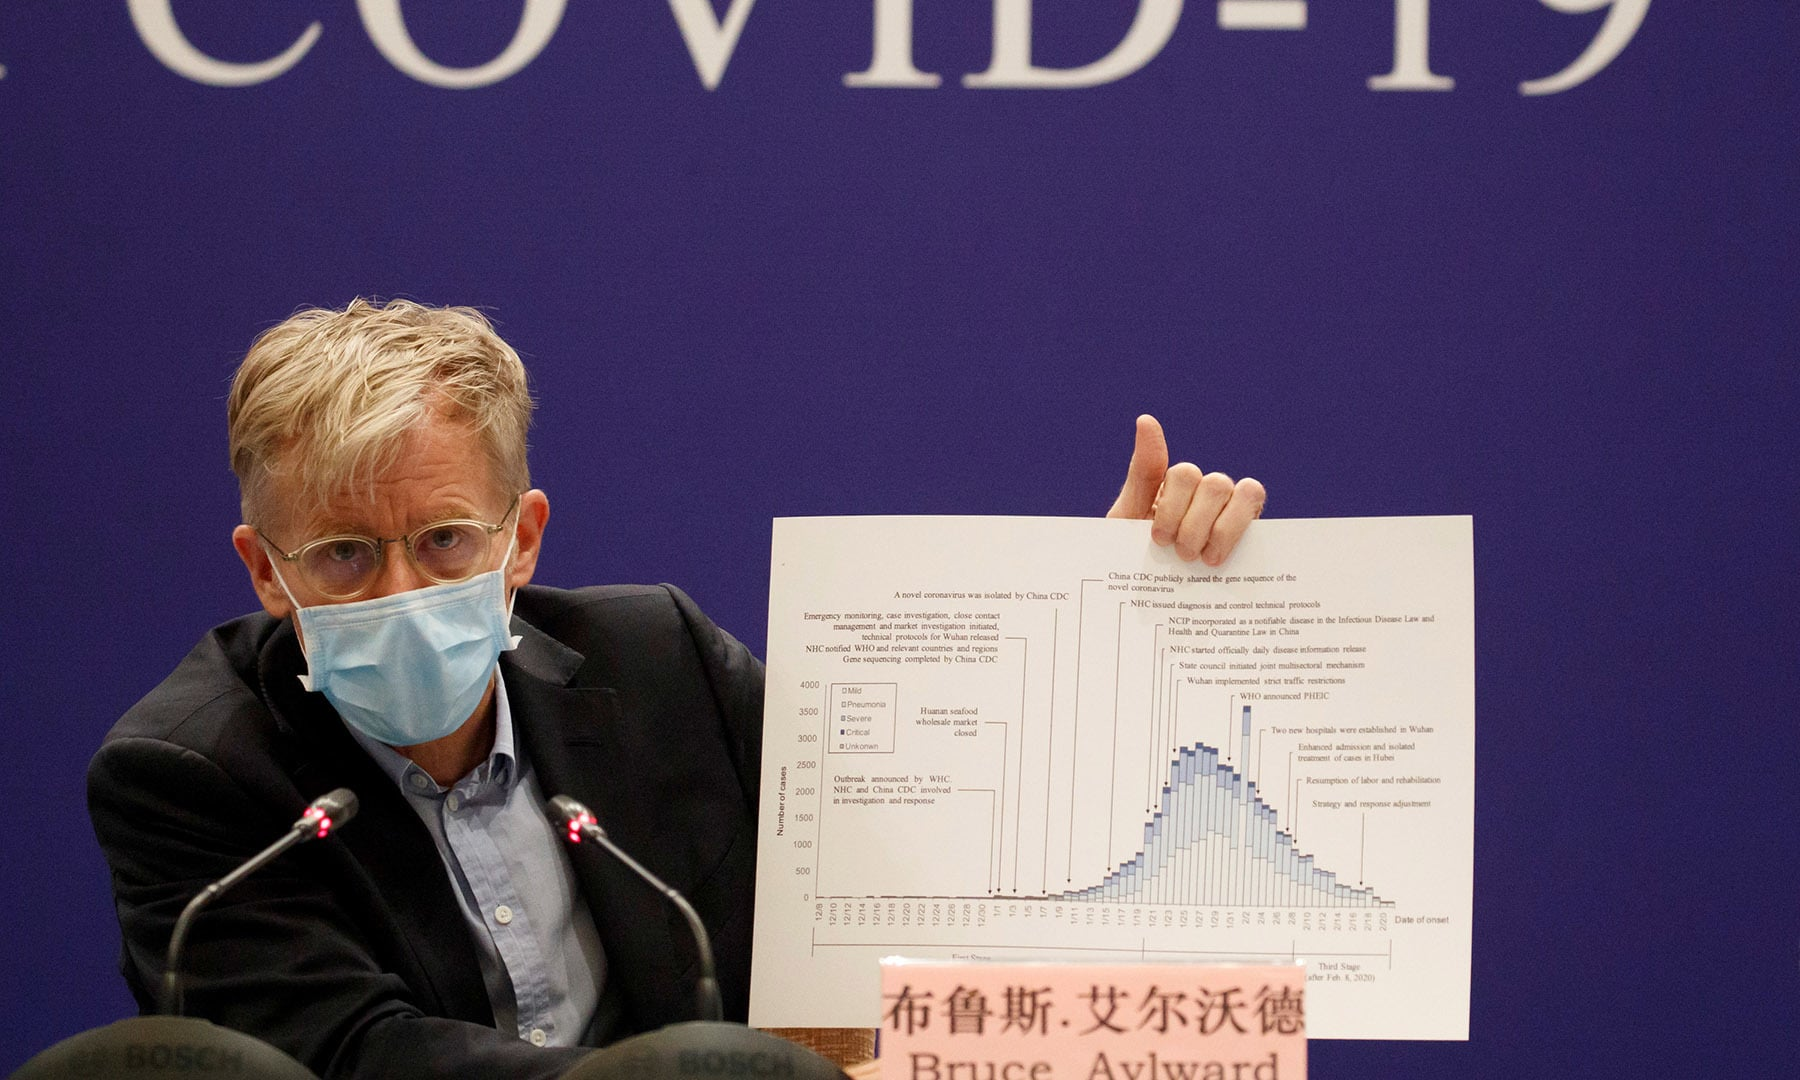 Bruce Aylward of the World Health Organisation attends a news conference of the WHO-China Joint Mission on Covid-19 about its investigation of the outbreak in Beijing on Feb 24. — Reuters